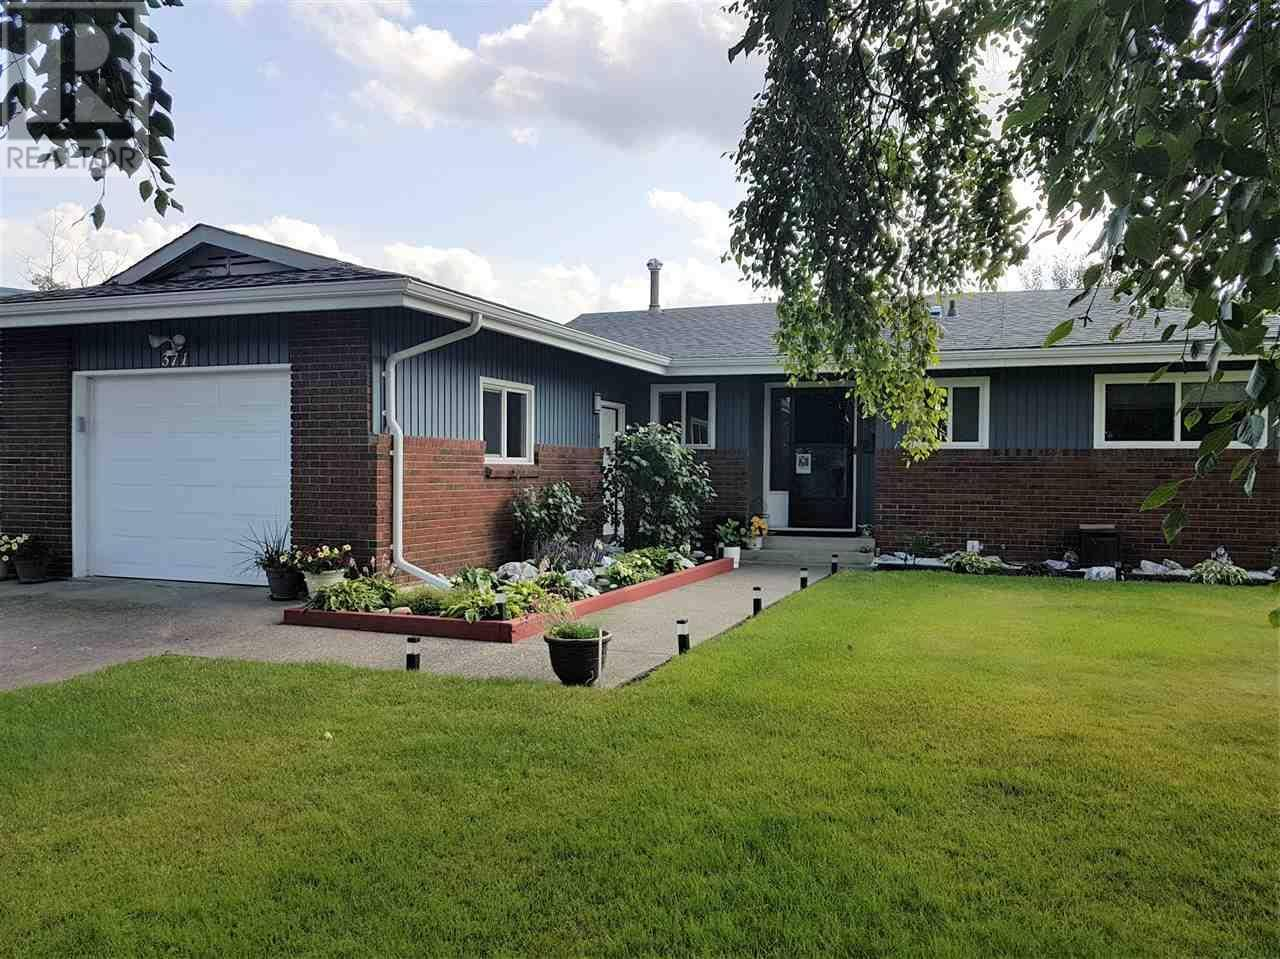 House for sale at 371 Pioneer Ave Prince George British Columbia - MLS: R2394962